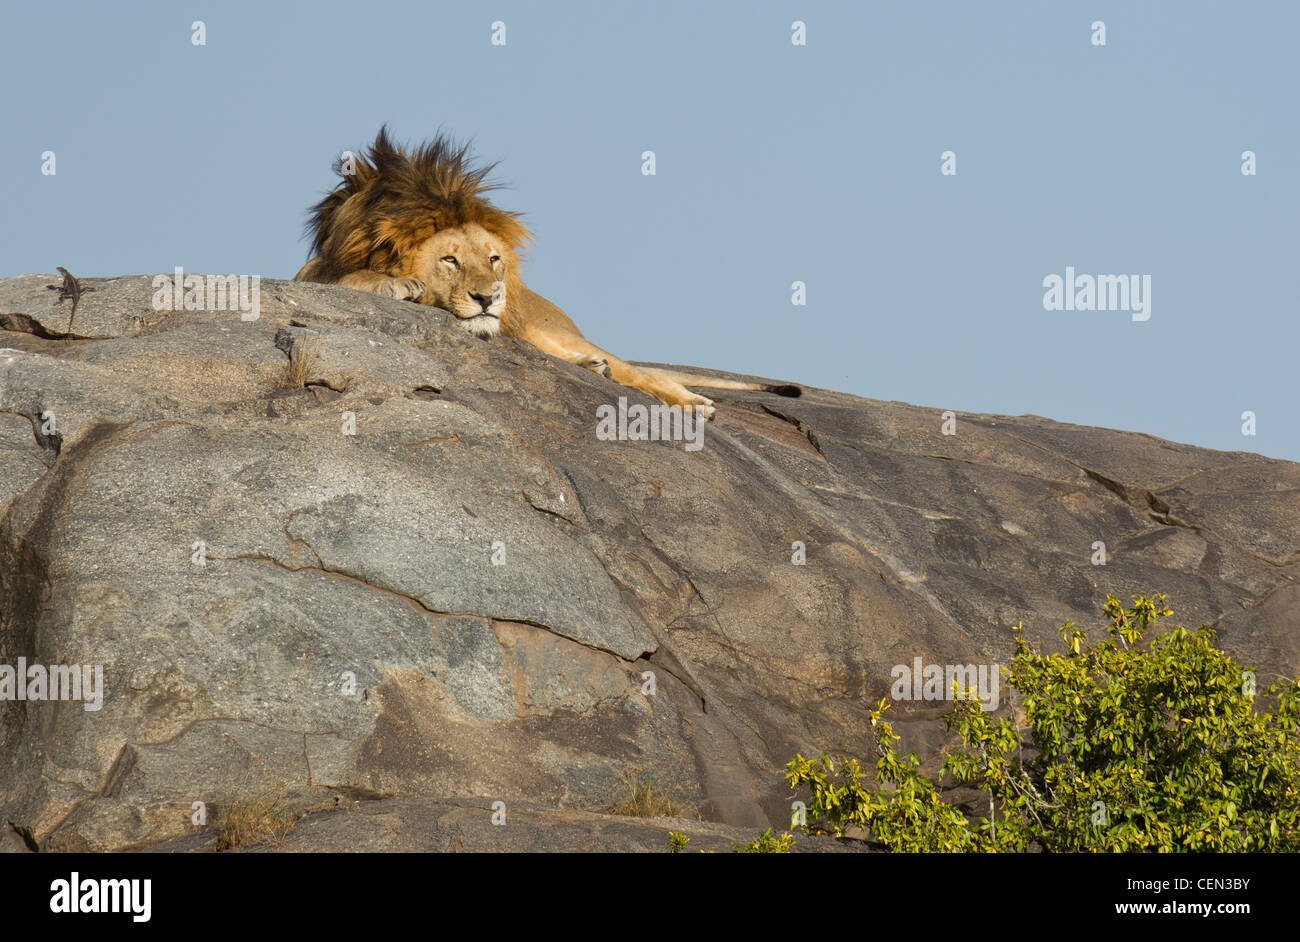 Male African Lion asleep on top of a rock (Panthera leo) in the Serengeti, Tanzania - Stock Image